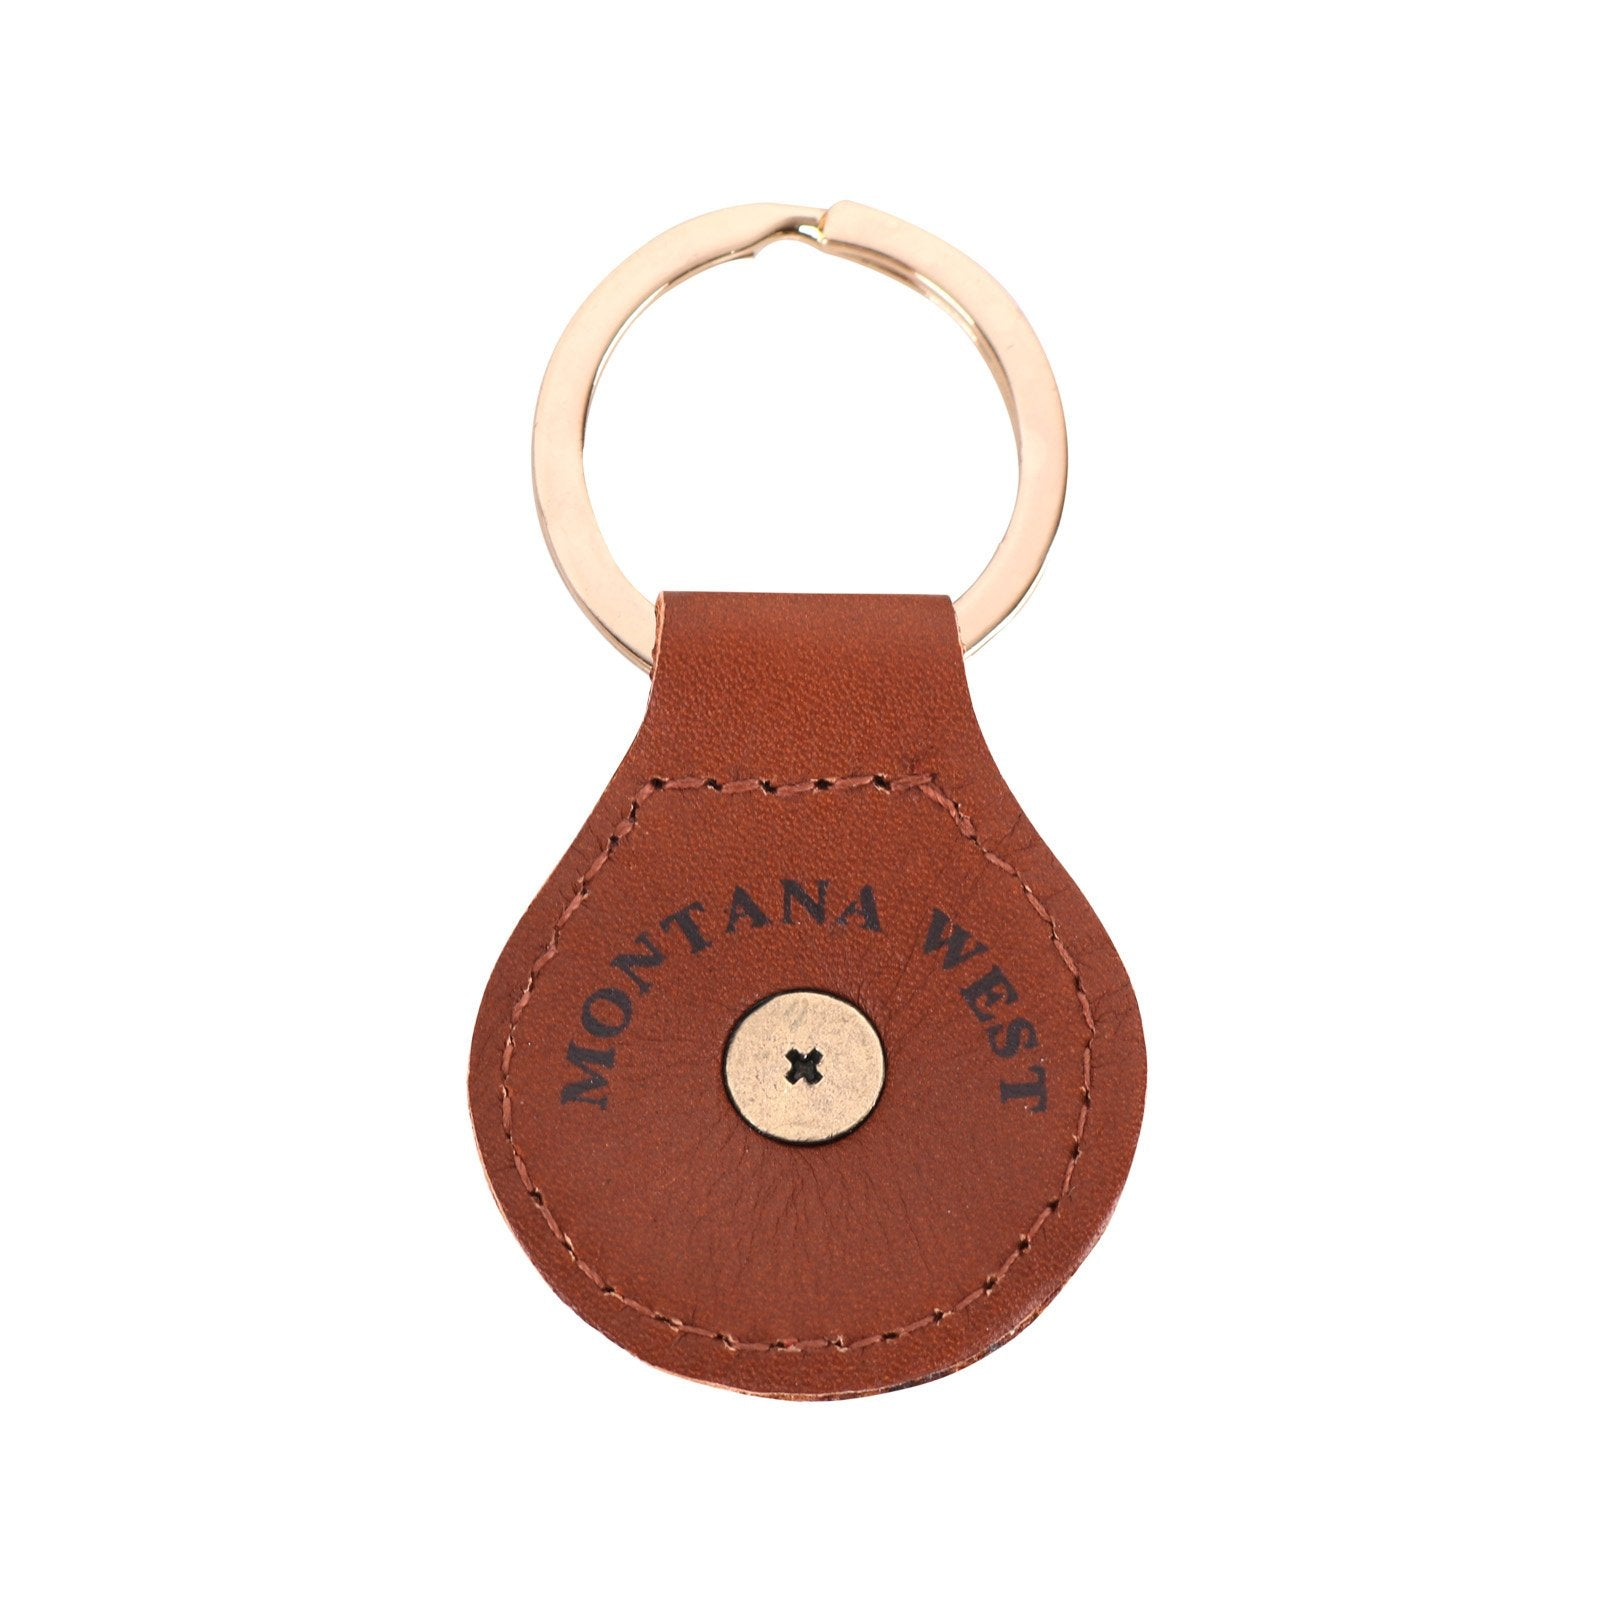 RYS-231B  Montana West Real Leather Thunderbird Concho Key Fob/Key Chain  1Pcs - Montana West World